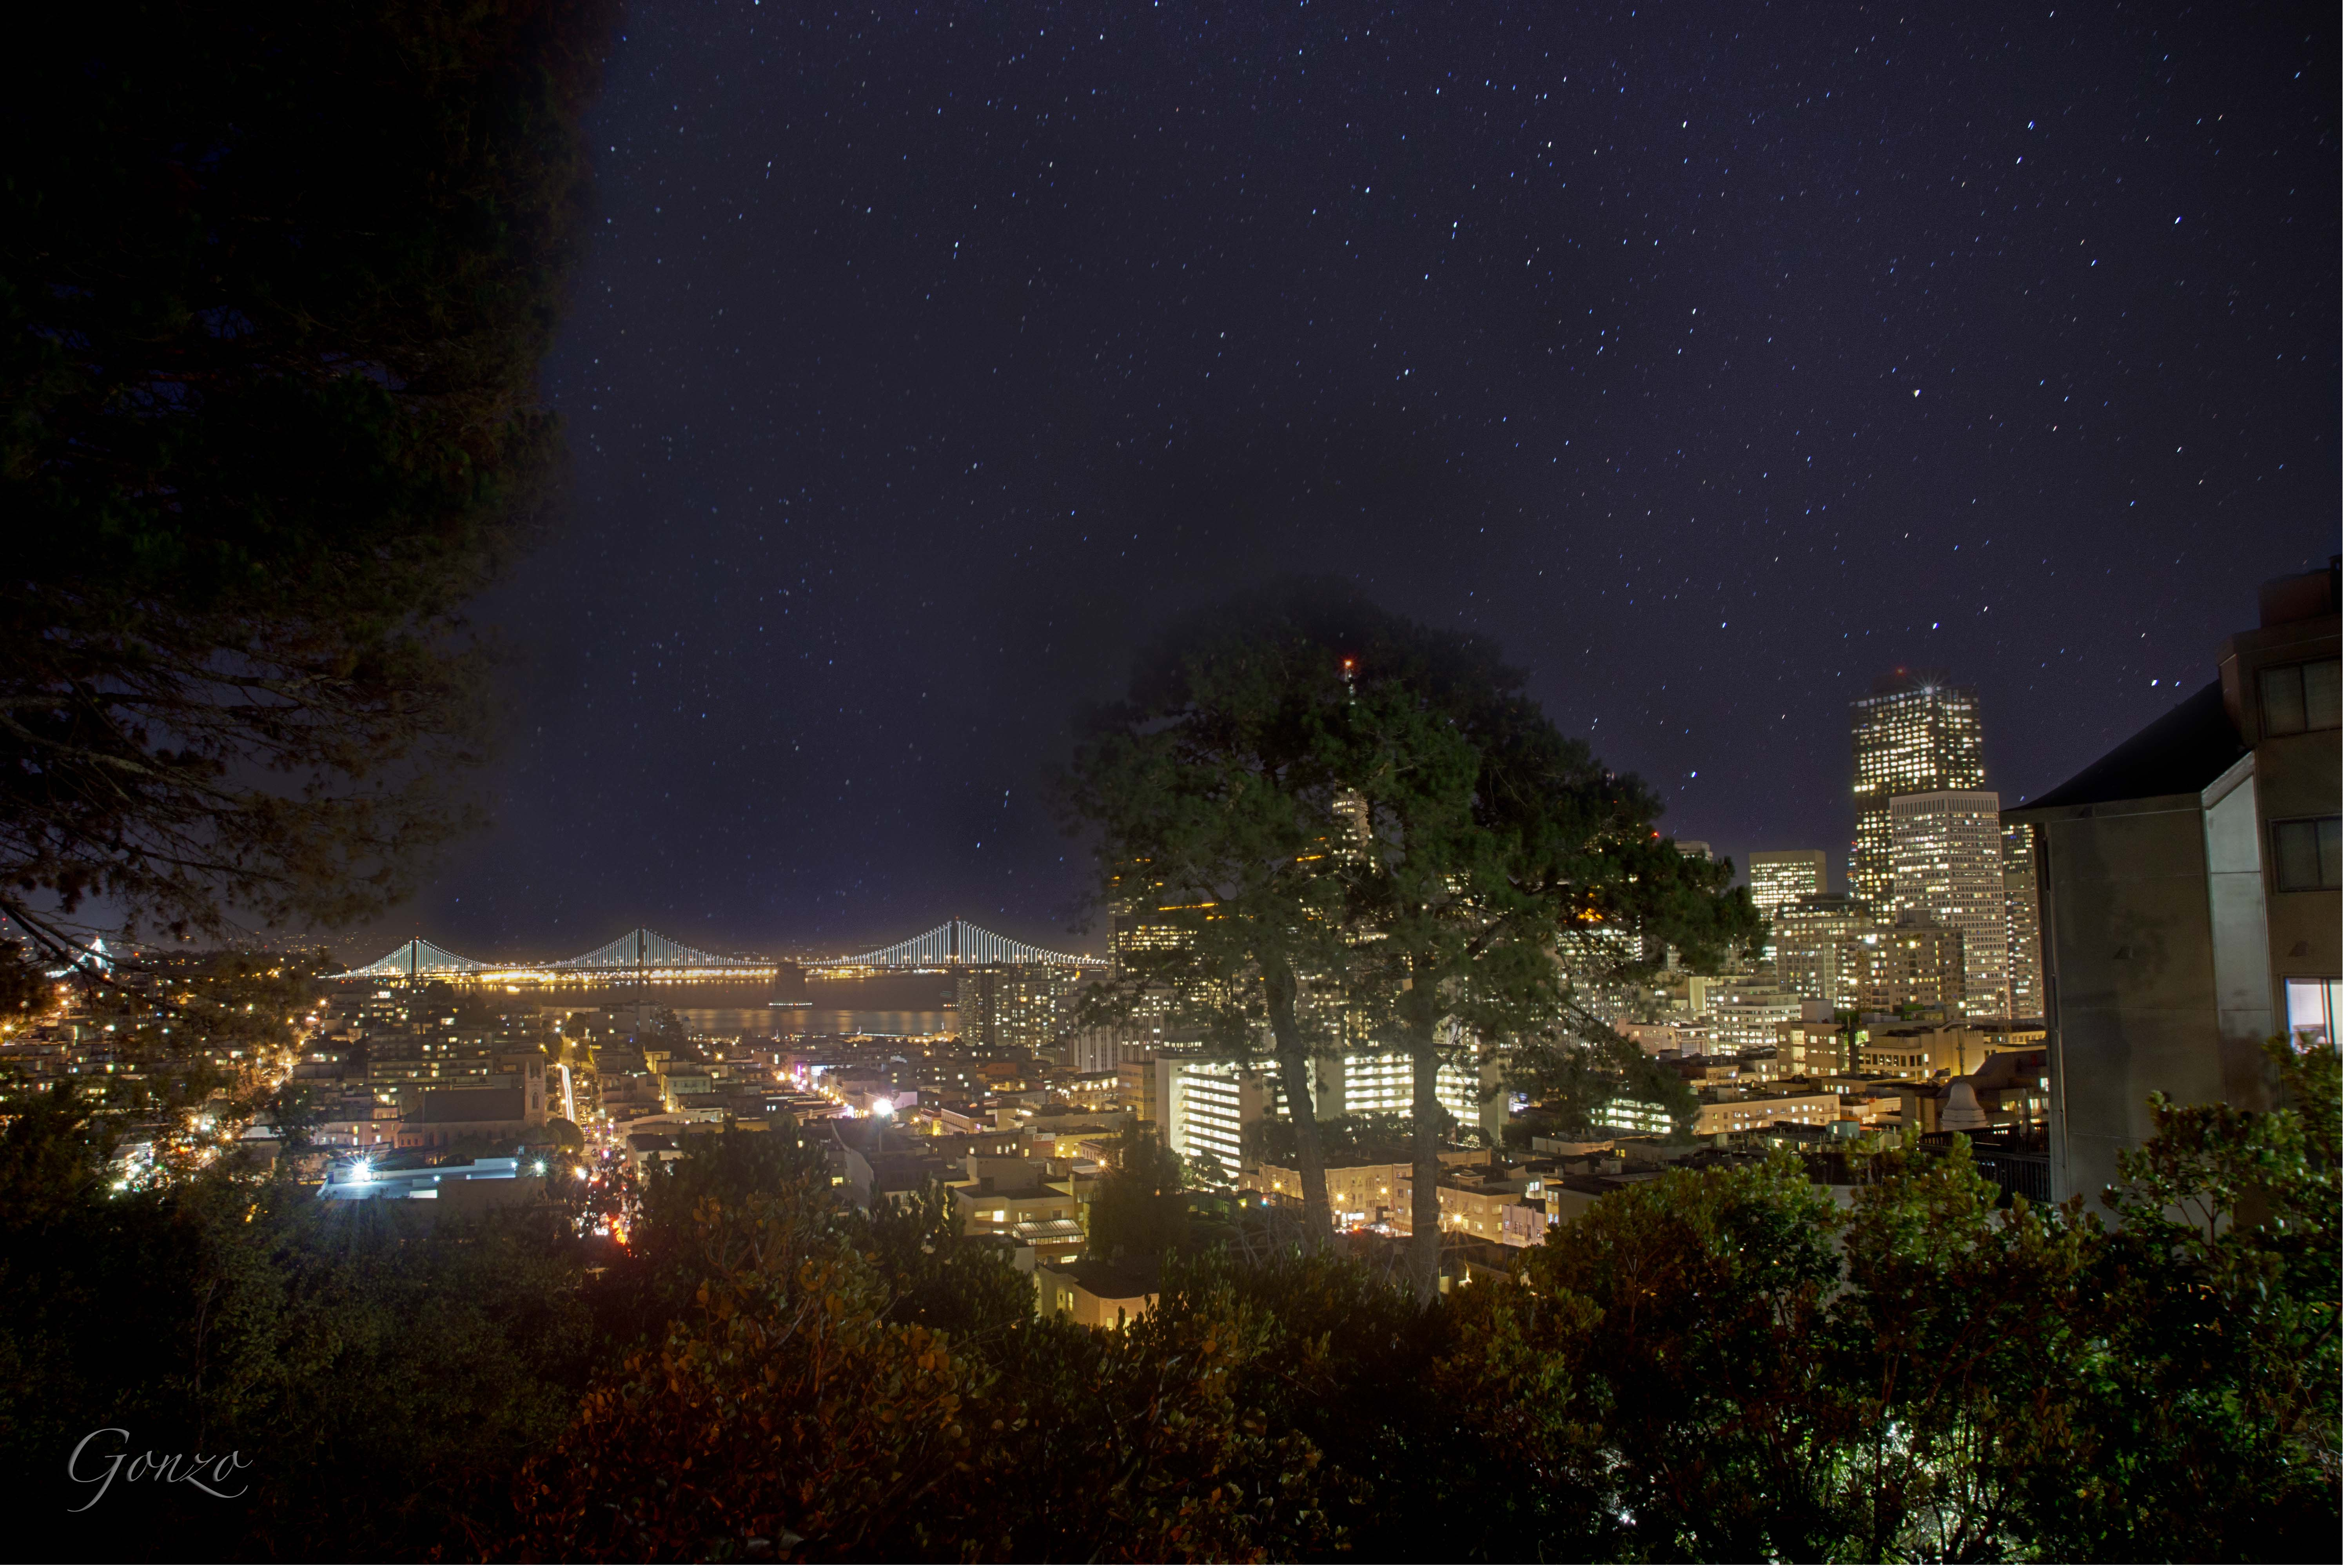 A Starry Night in San Francisco